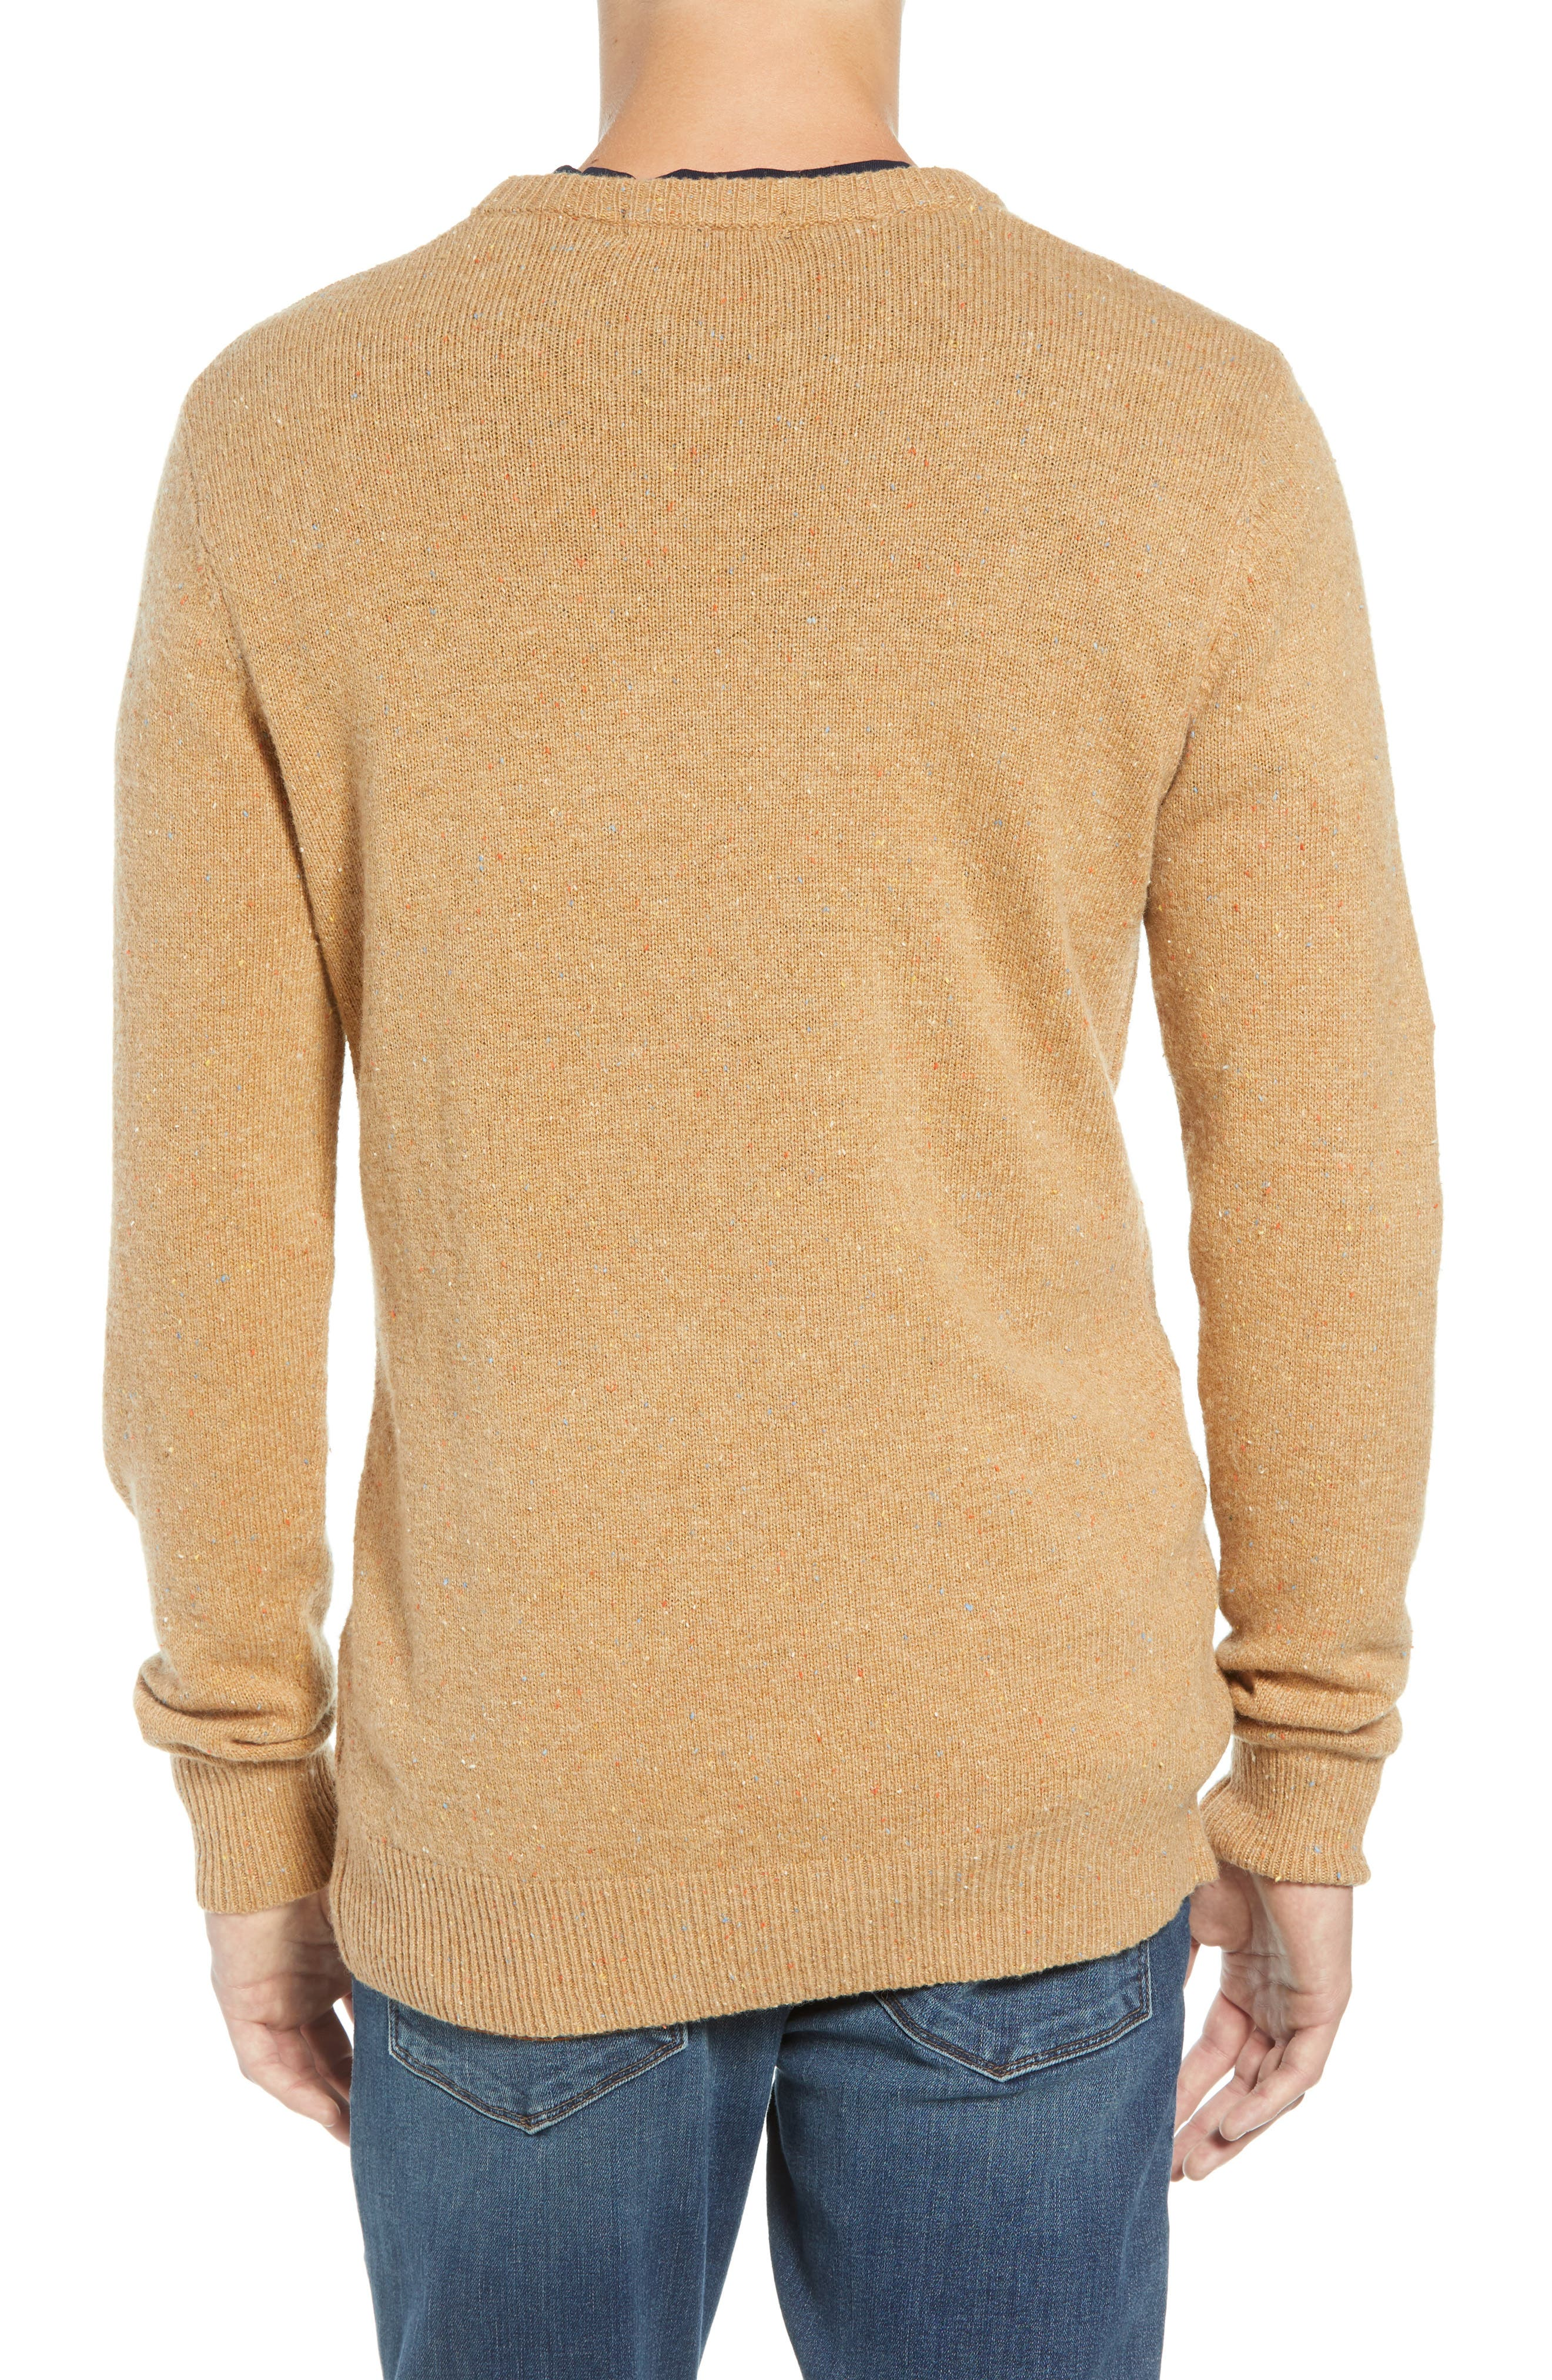 SCOTCH & SODA,                             Nepped Wool Blend Sweater,                             Alternate thumbnail 2, color,                             COMBO E